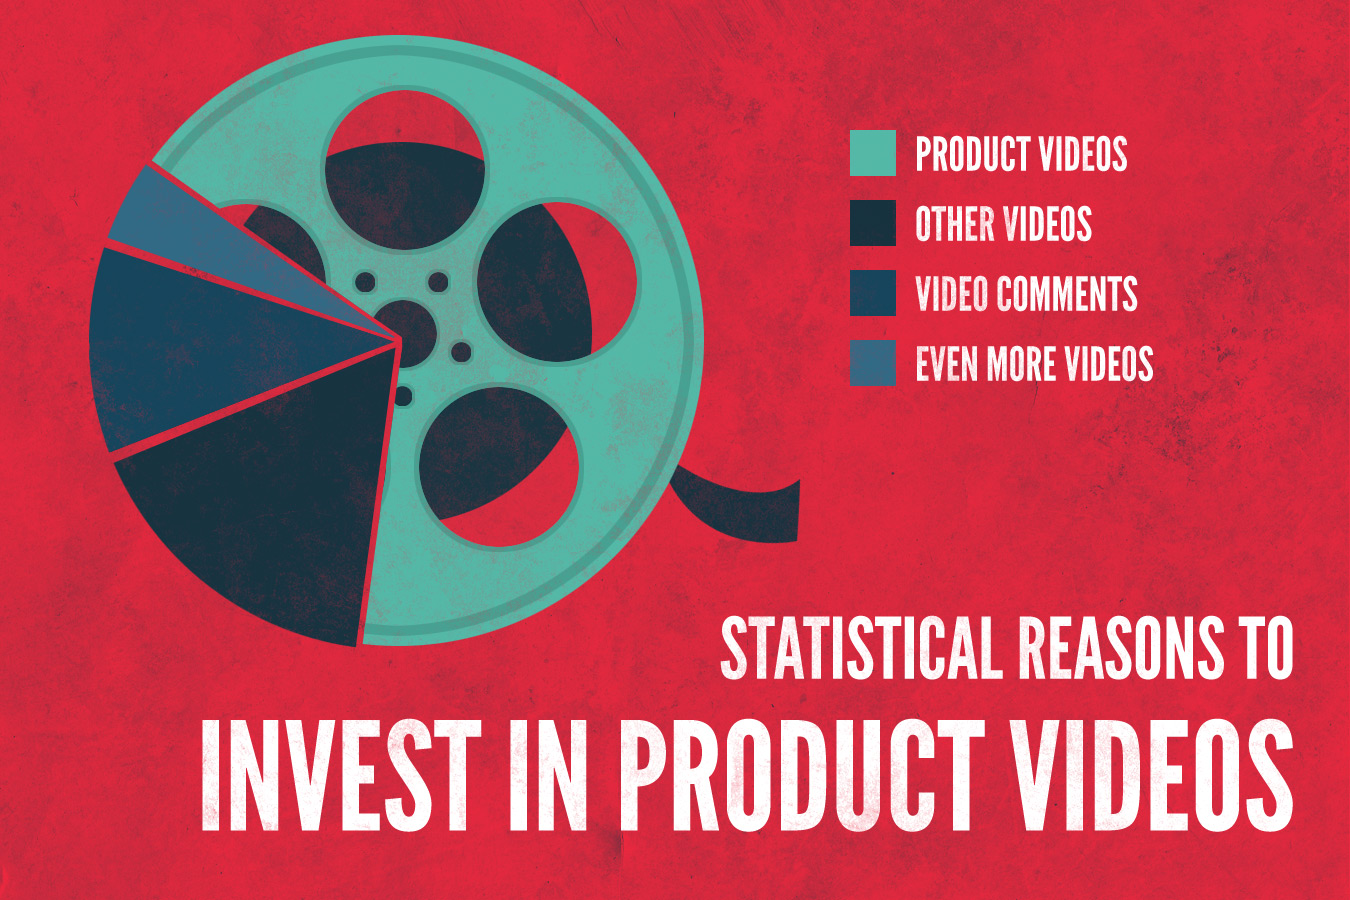 10 Statistical Reasons to Invest in Product Videos for Marketing